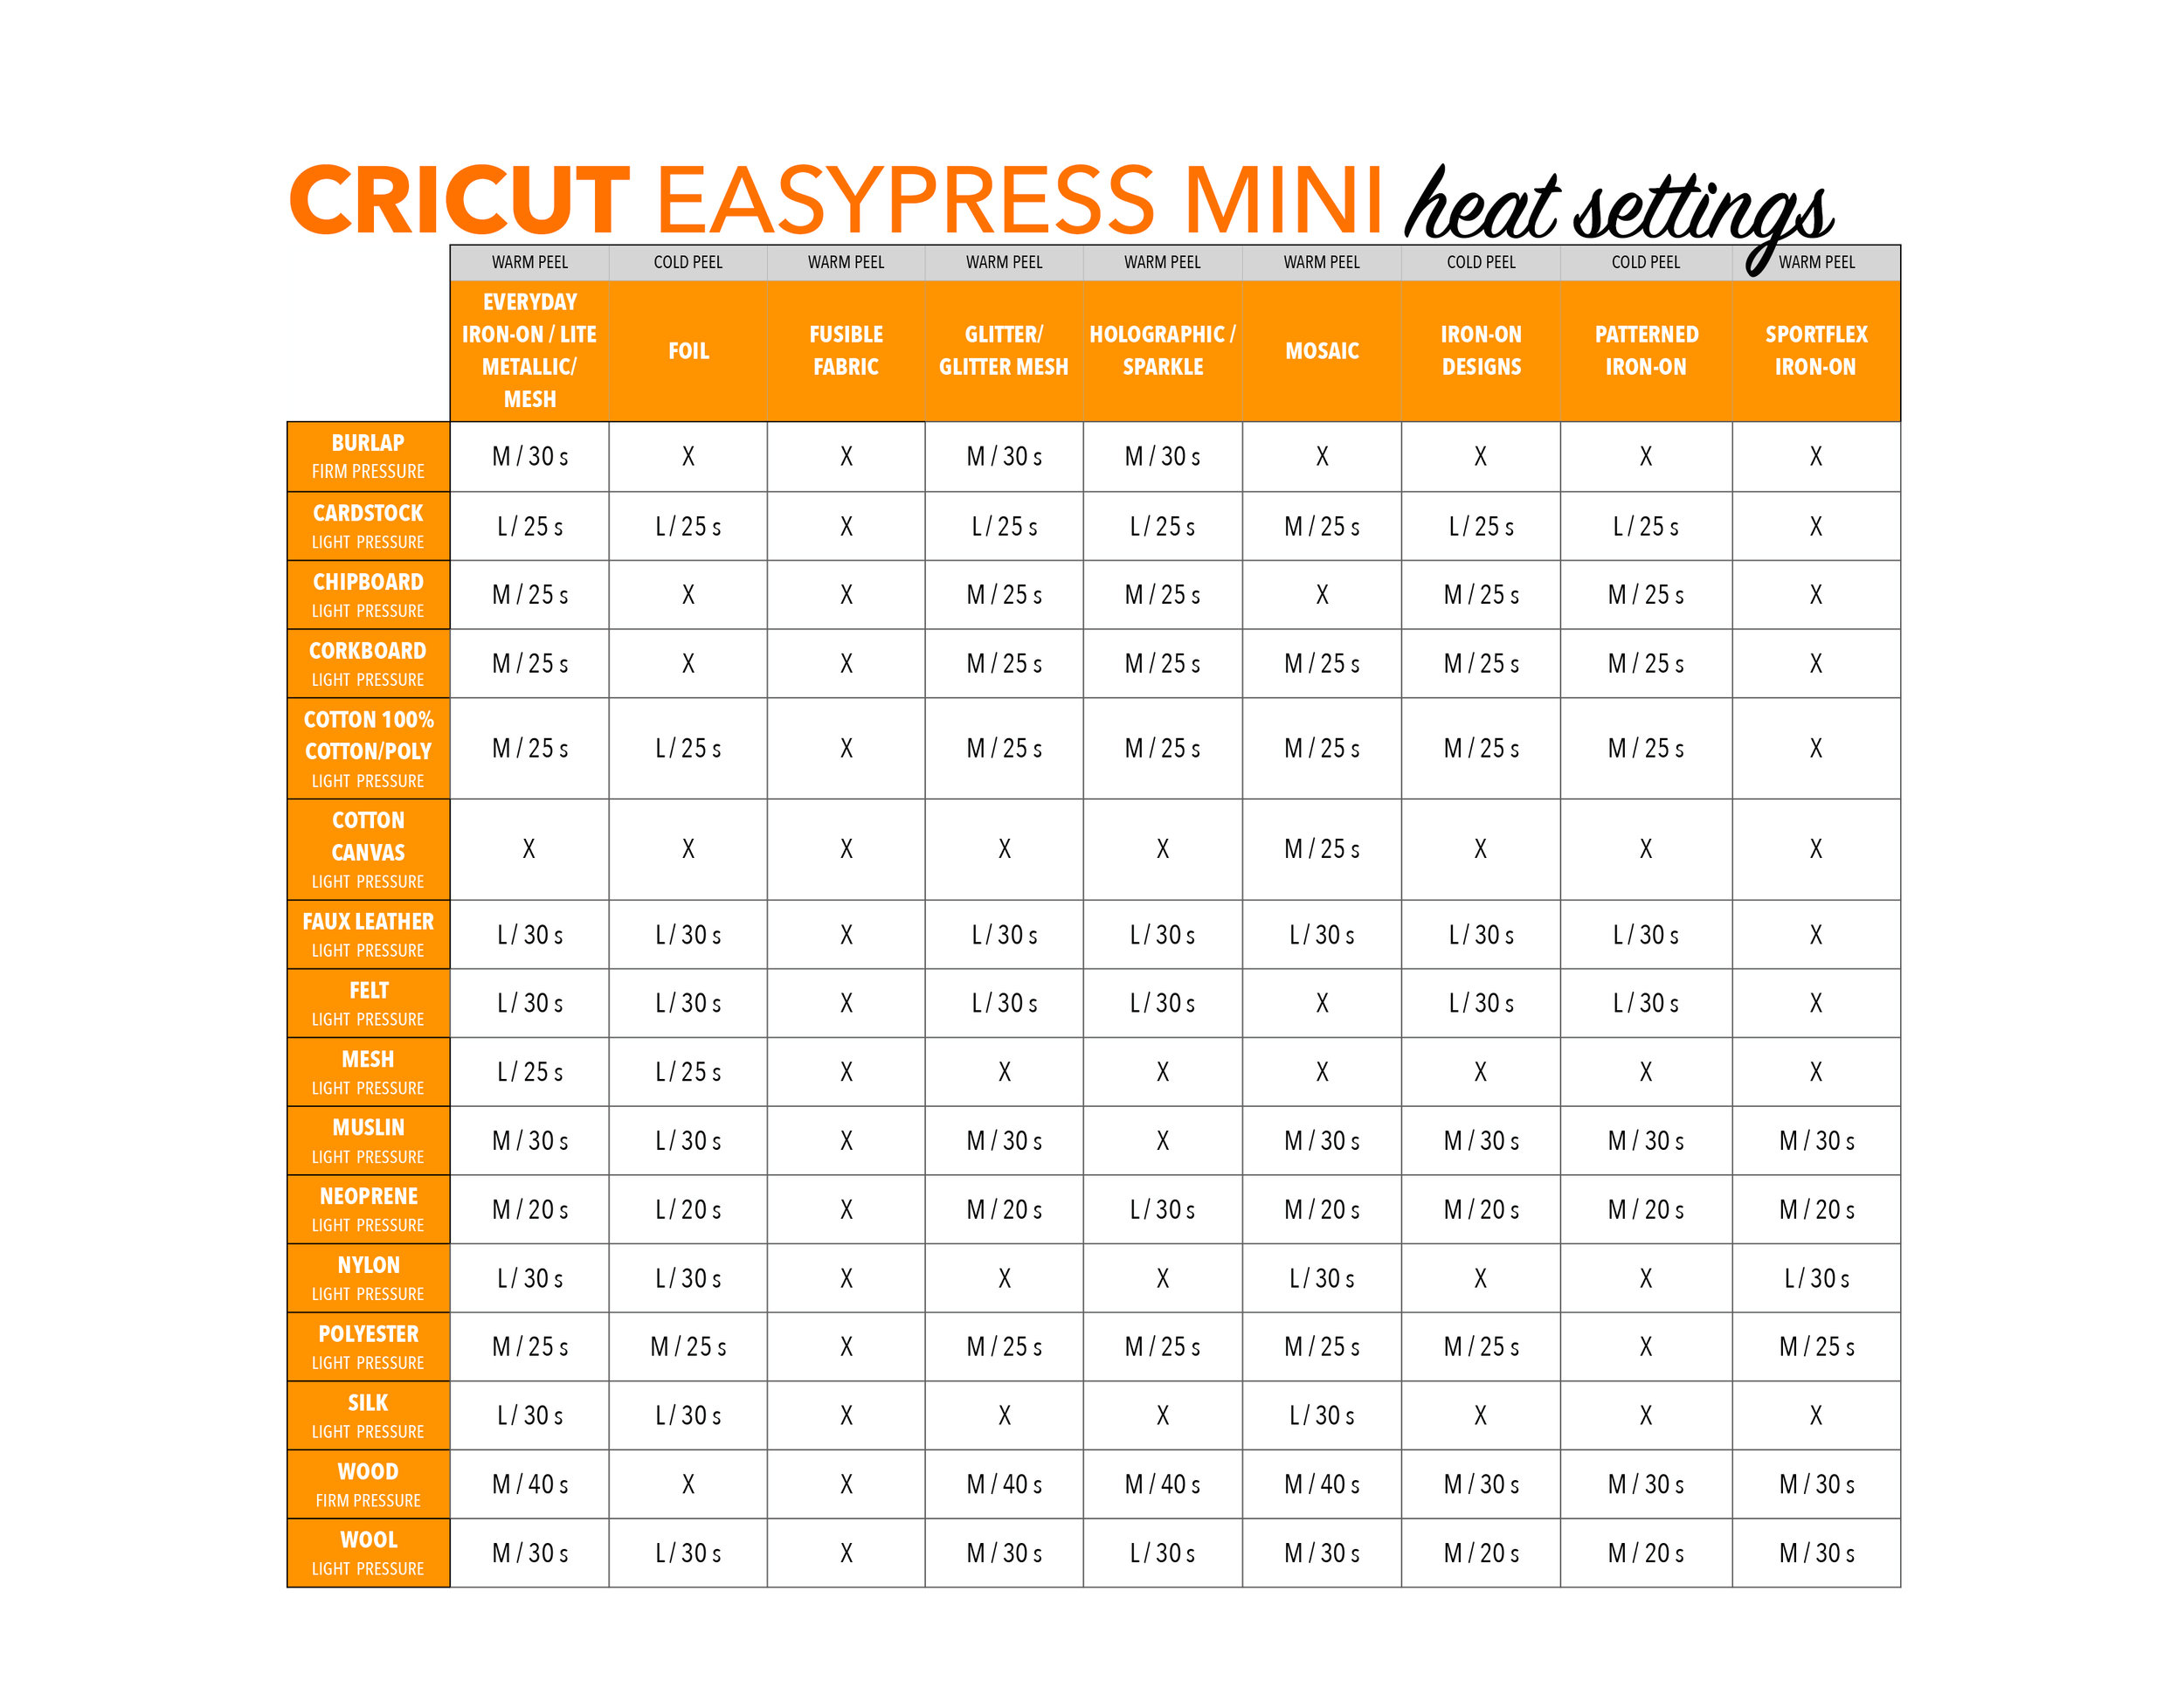 Cricut EasyPress Mini heat settings guide: Click to download and print.